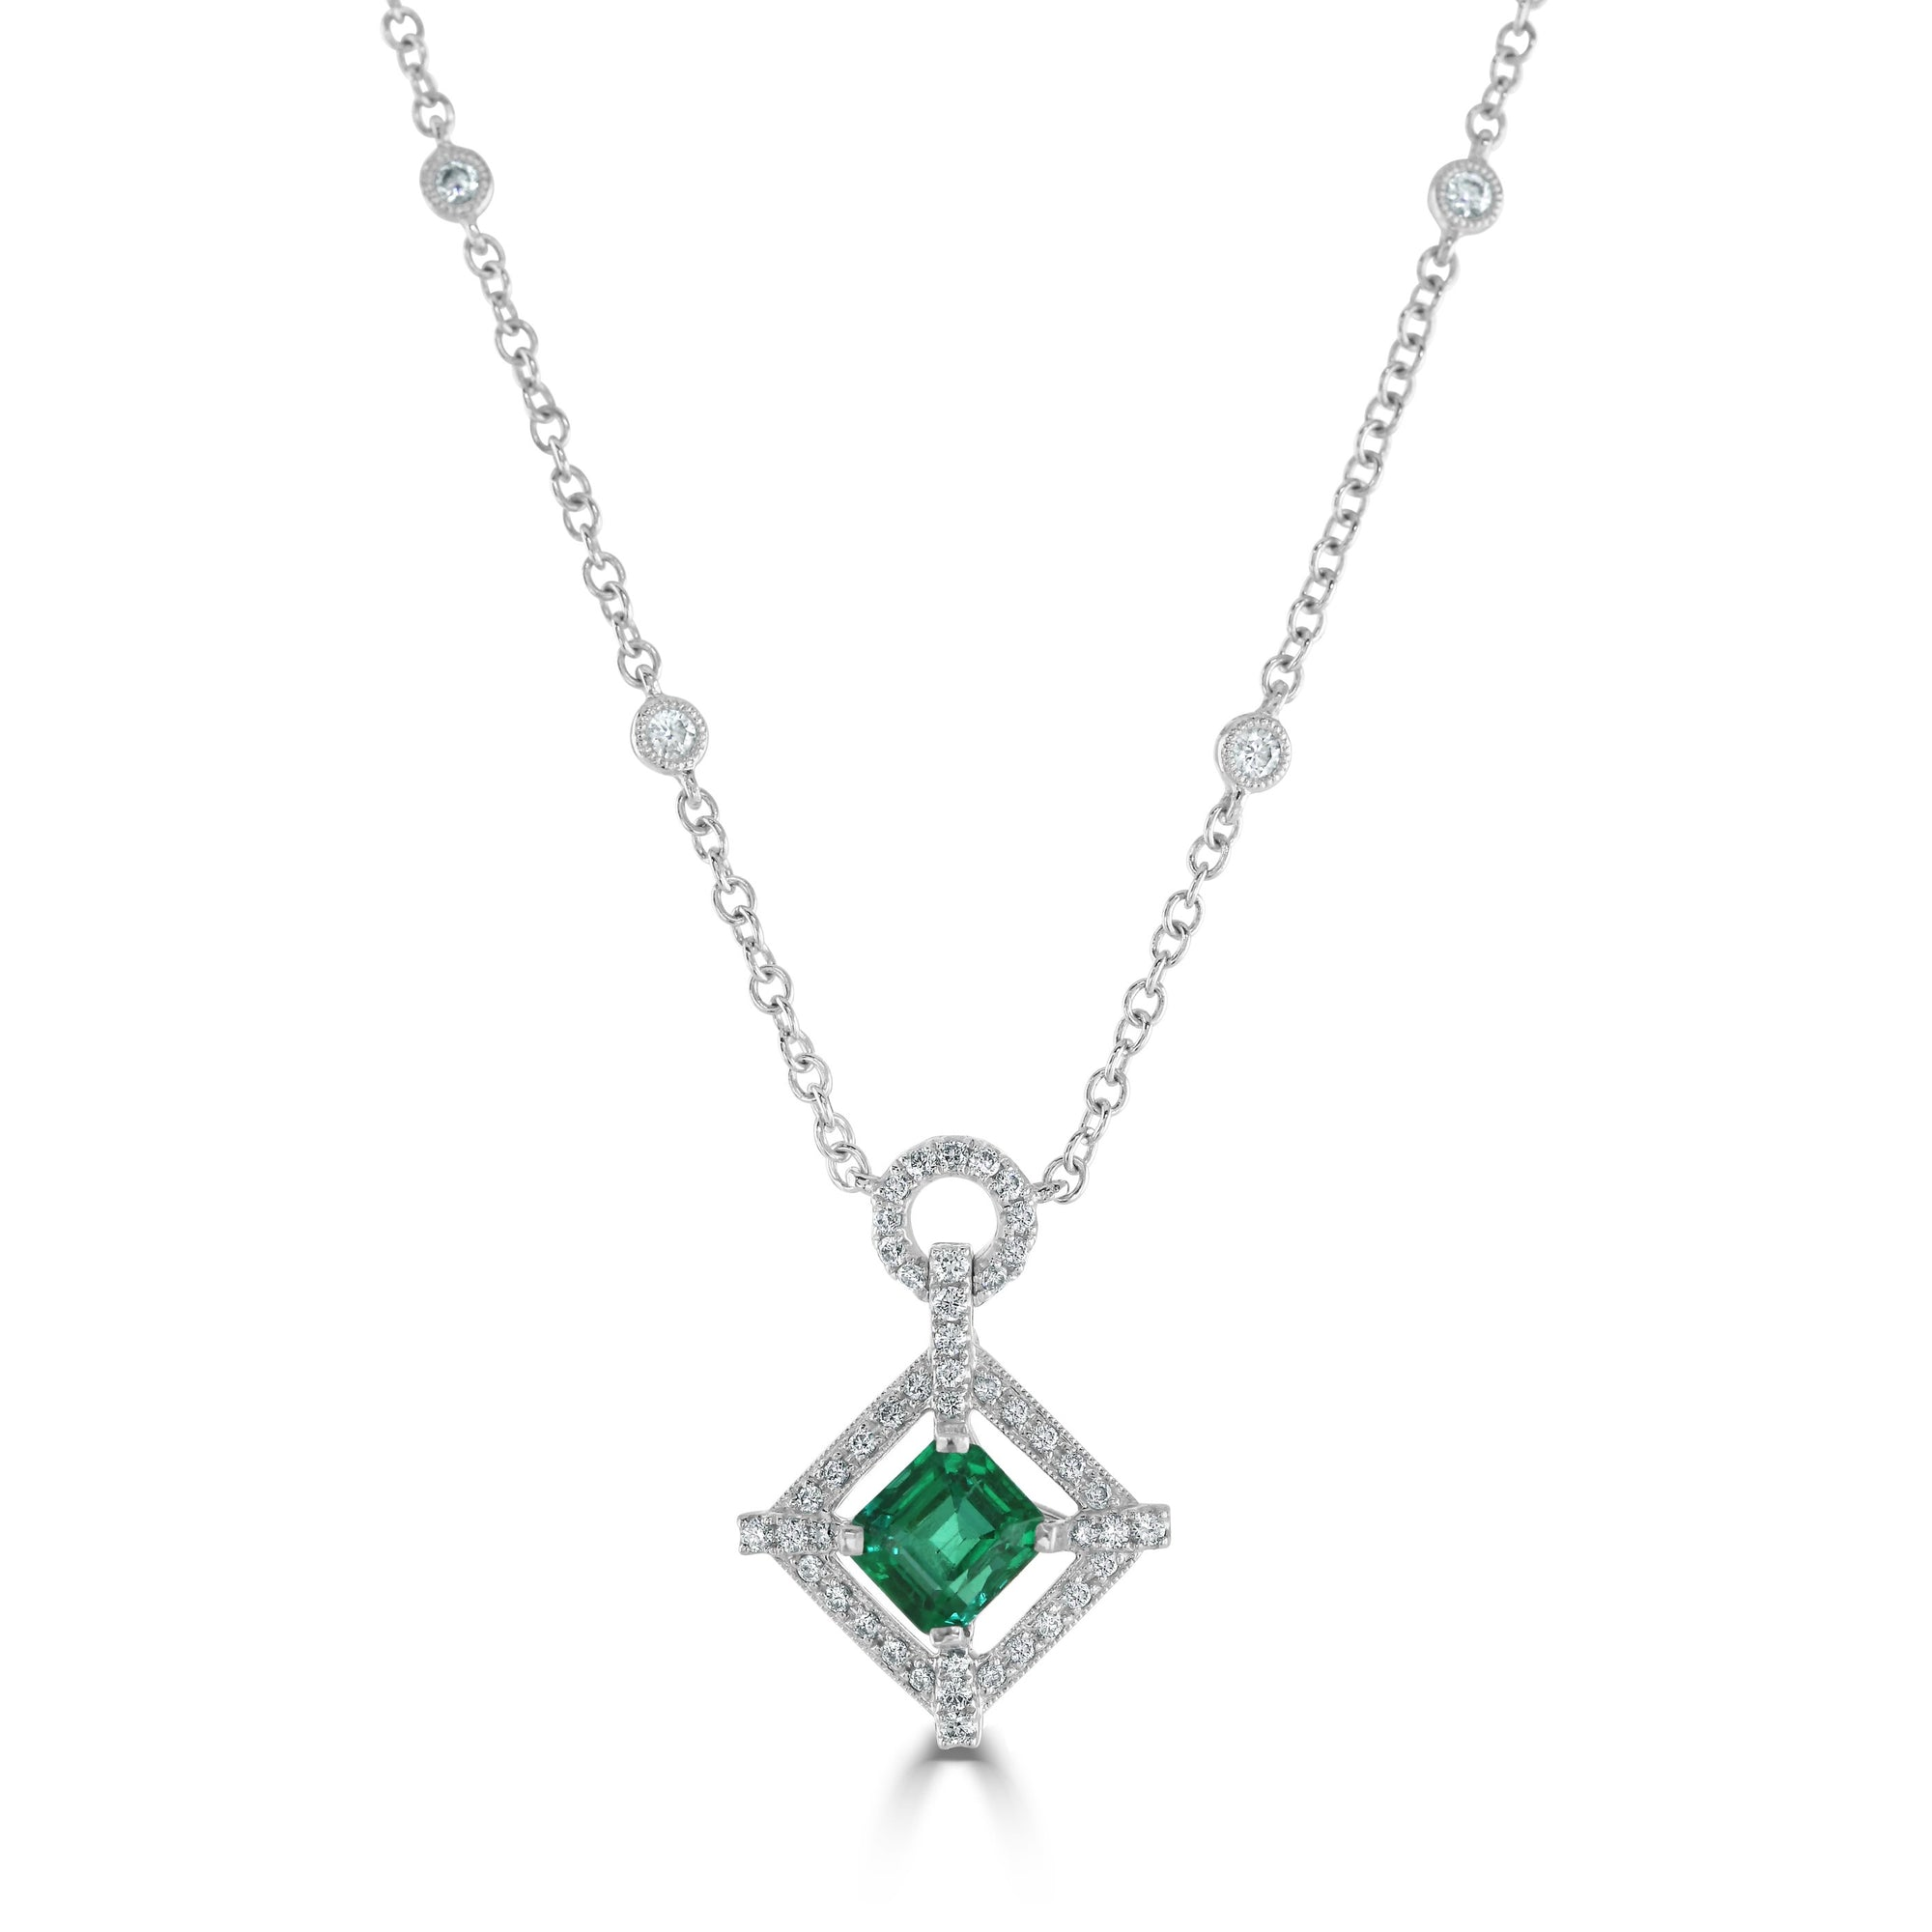 18ct White Gold Emerald and Diamond Cluster Necklace